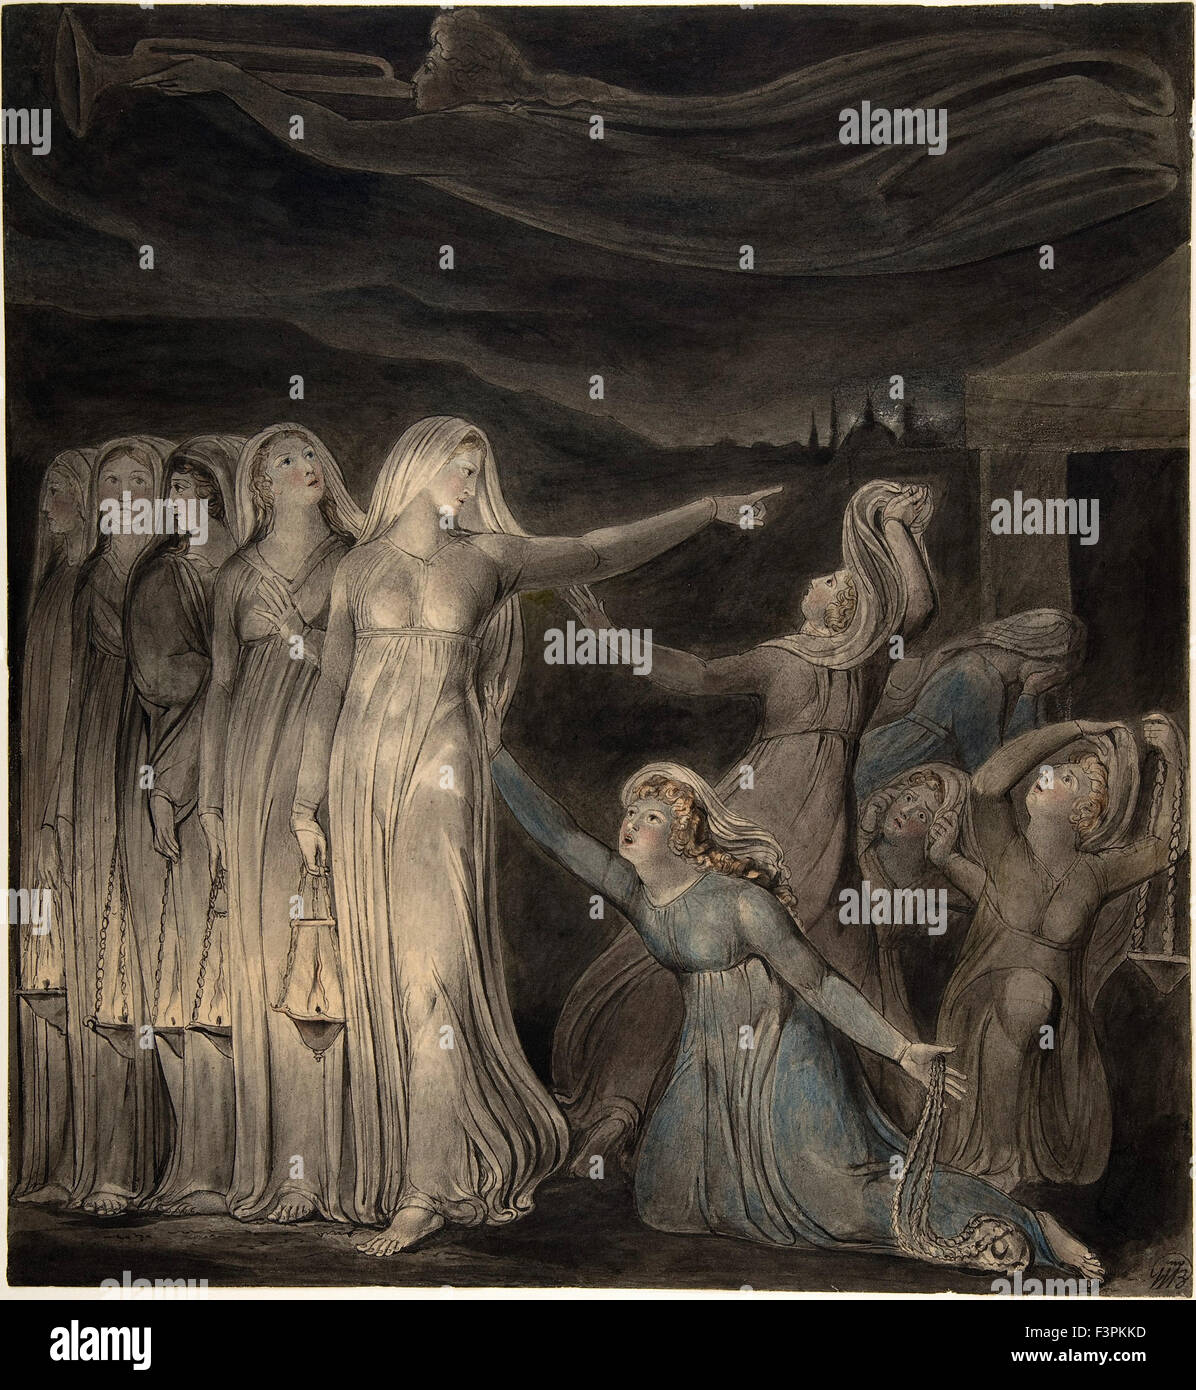 William BLake - The Parable of the Wise and Foolish Virgins - Stock Image